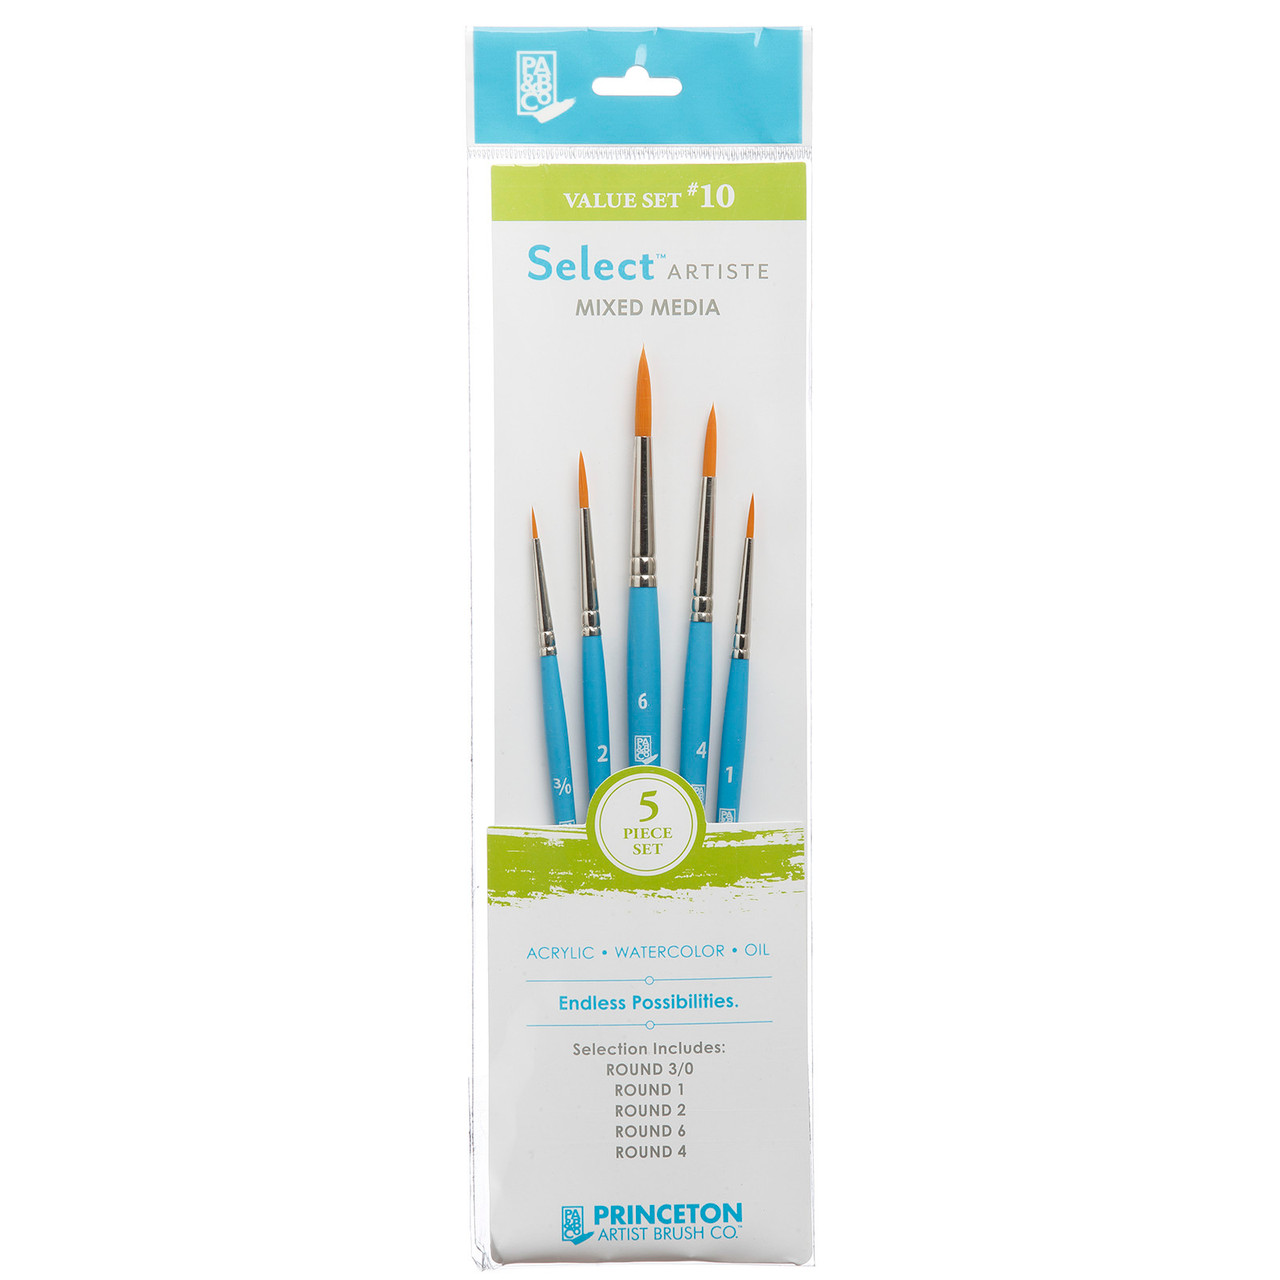 Select Artiste Mixed Media 5-Brush Set #10 Round 3/0, 1, 2, 4, 6